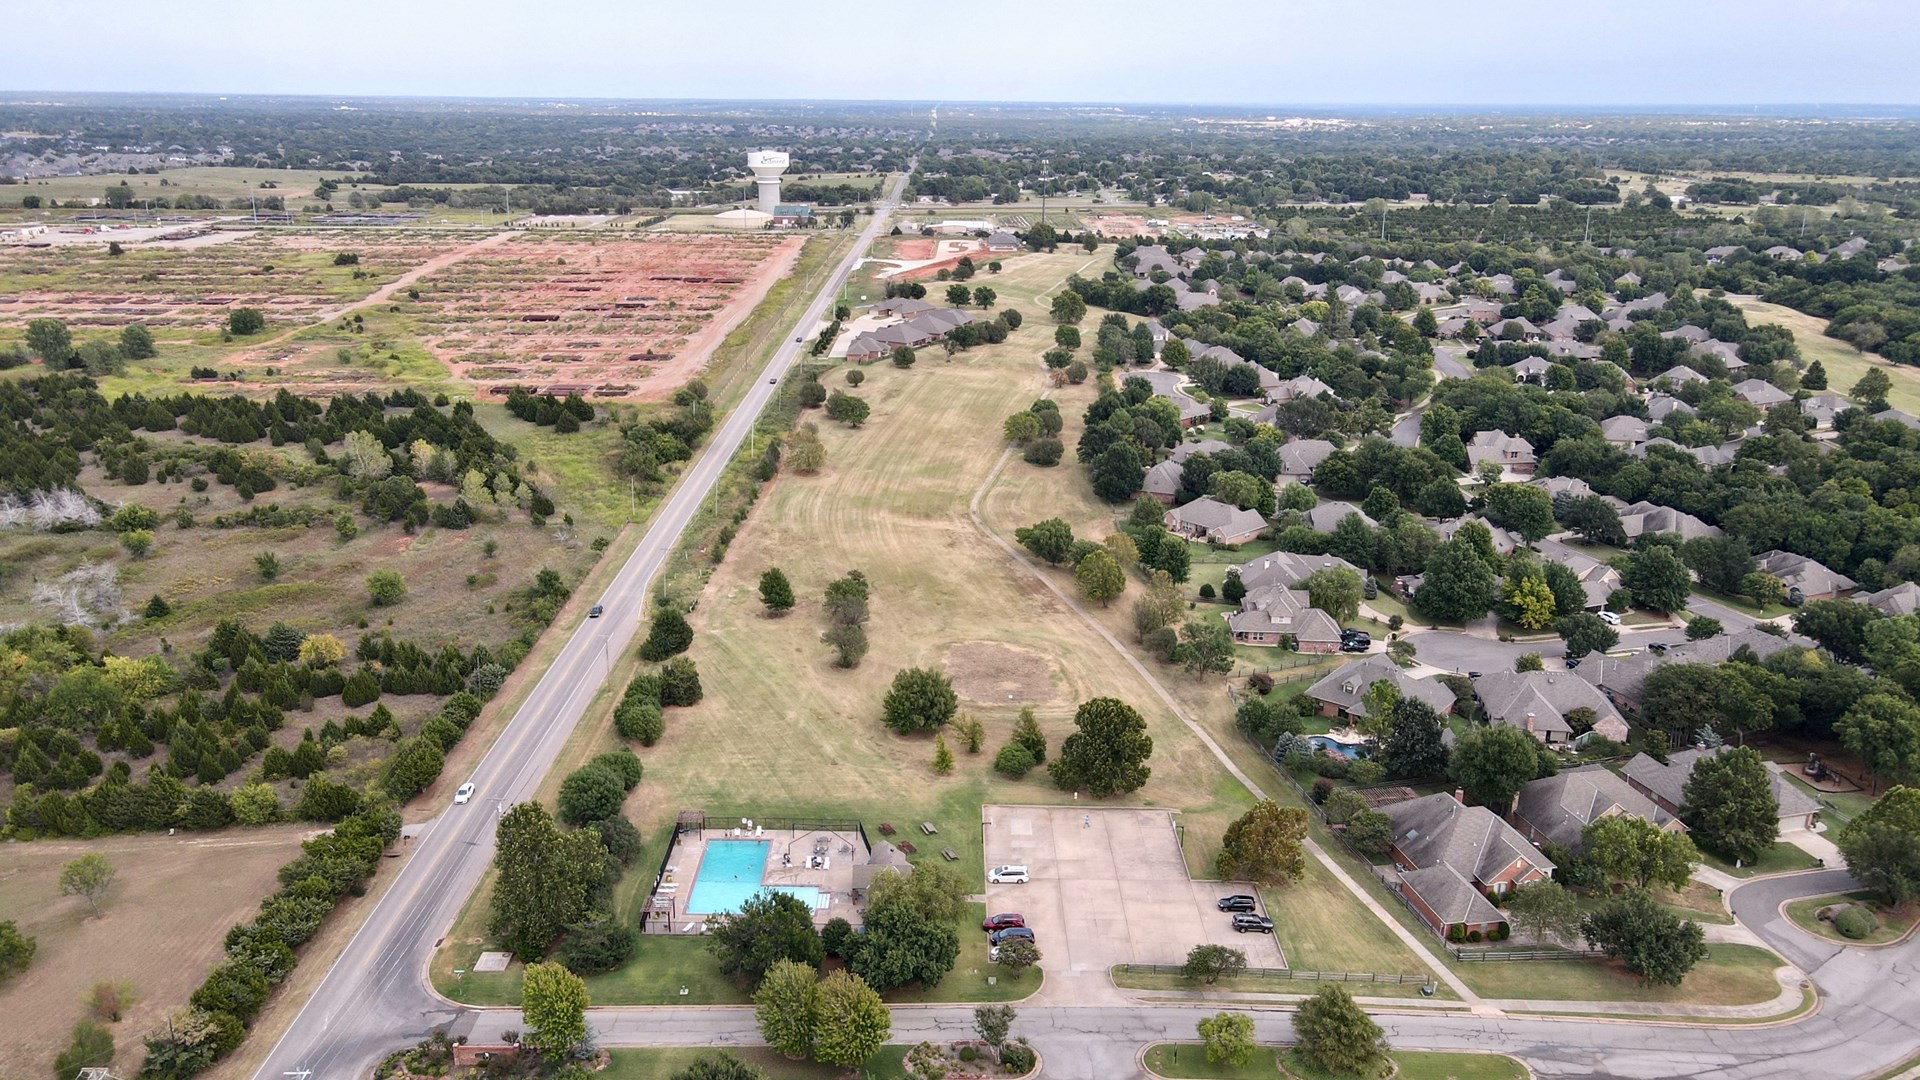 COMMERCIAL LAND FOR SALE RESIDENTIAL DEVELOPMENT EDMOND OKLA